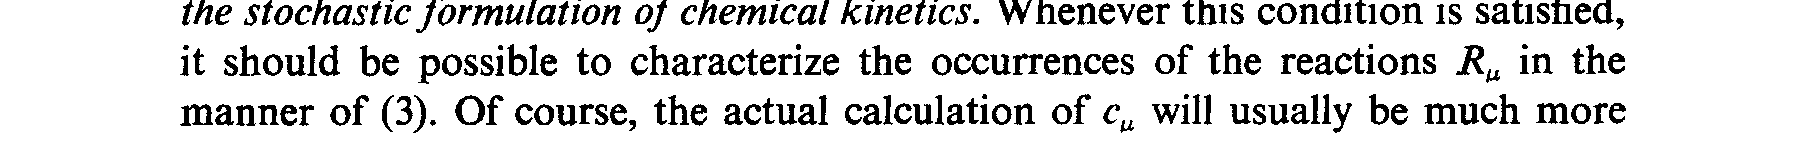 chemical kinetics does not seem to have been widely appreciated.